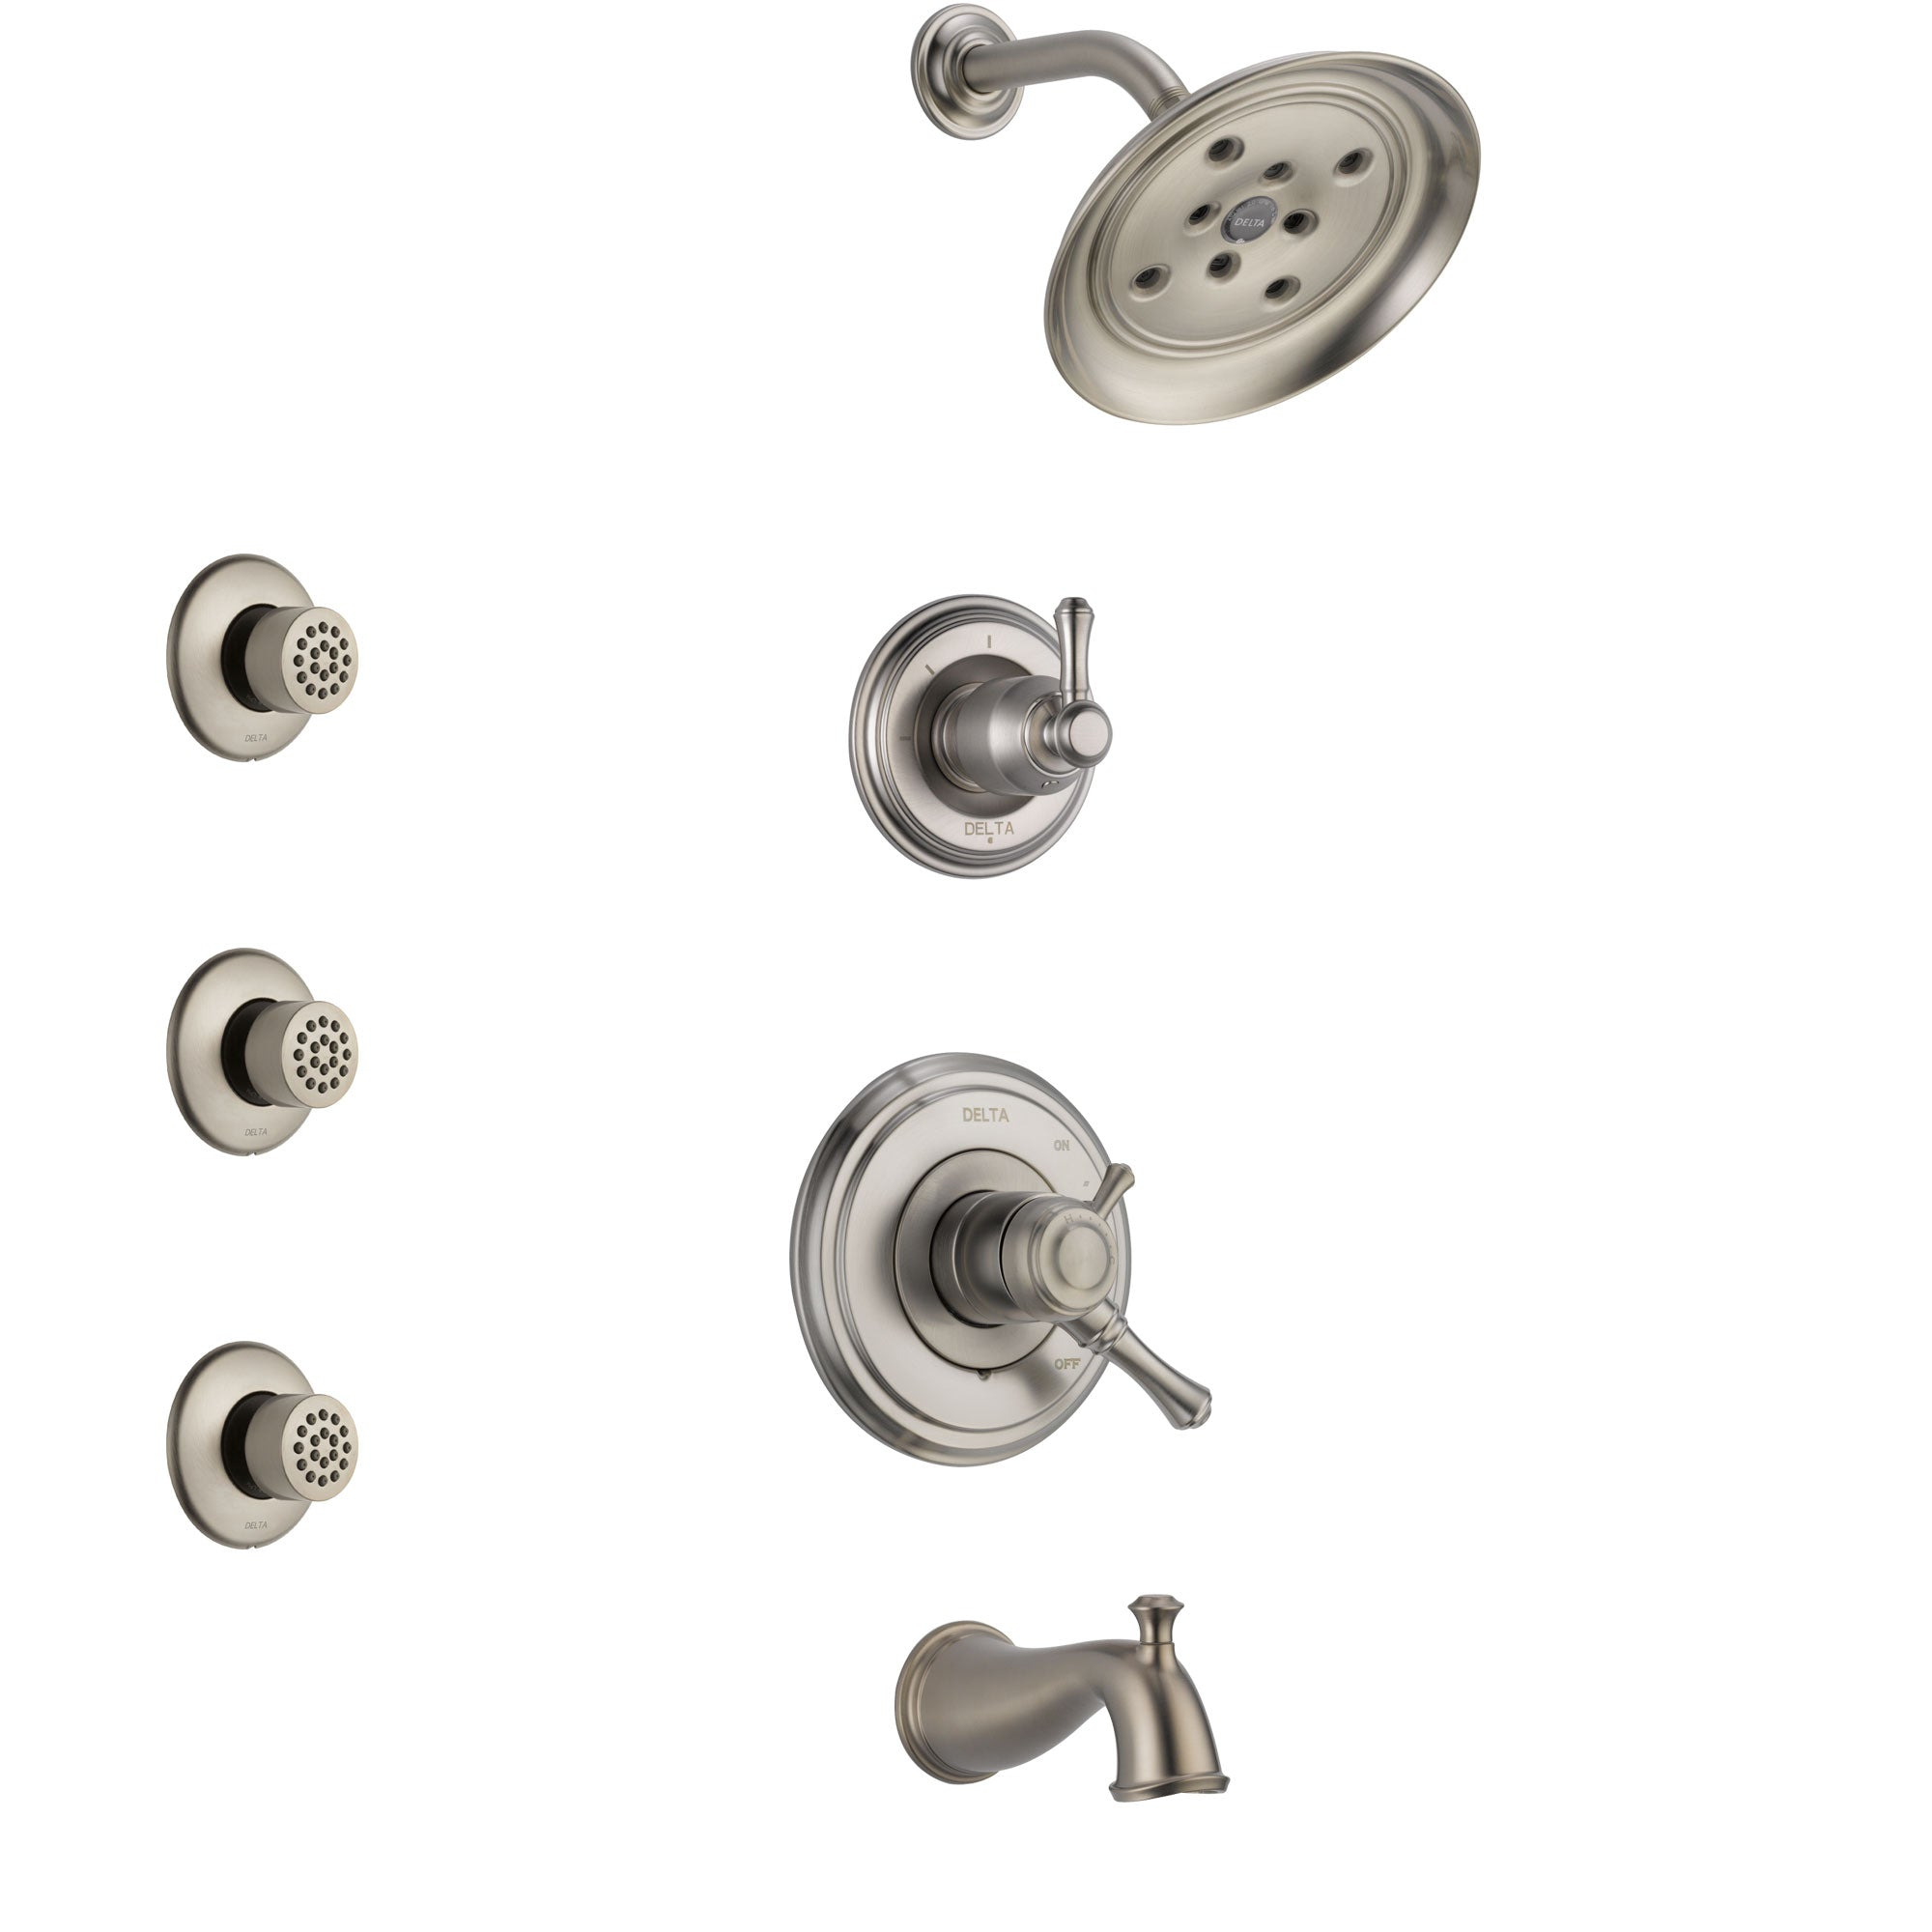 Delta Cassidy Stainless Steel Finish Tub and Shower System with Dual Control Handle, 3-Setting Diverter, Showerhead, and 3 Body Sprays SS17497SS2